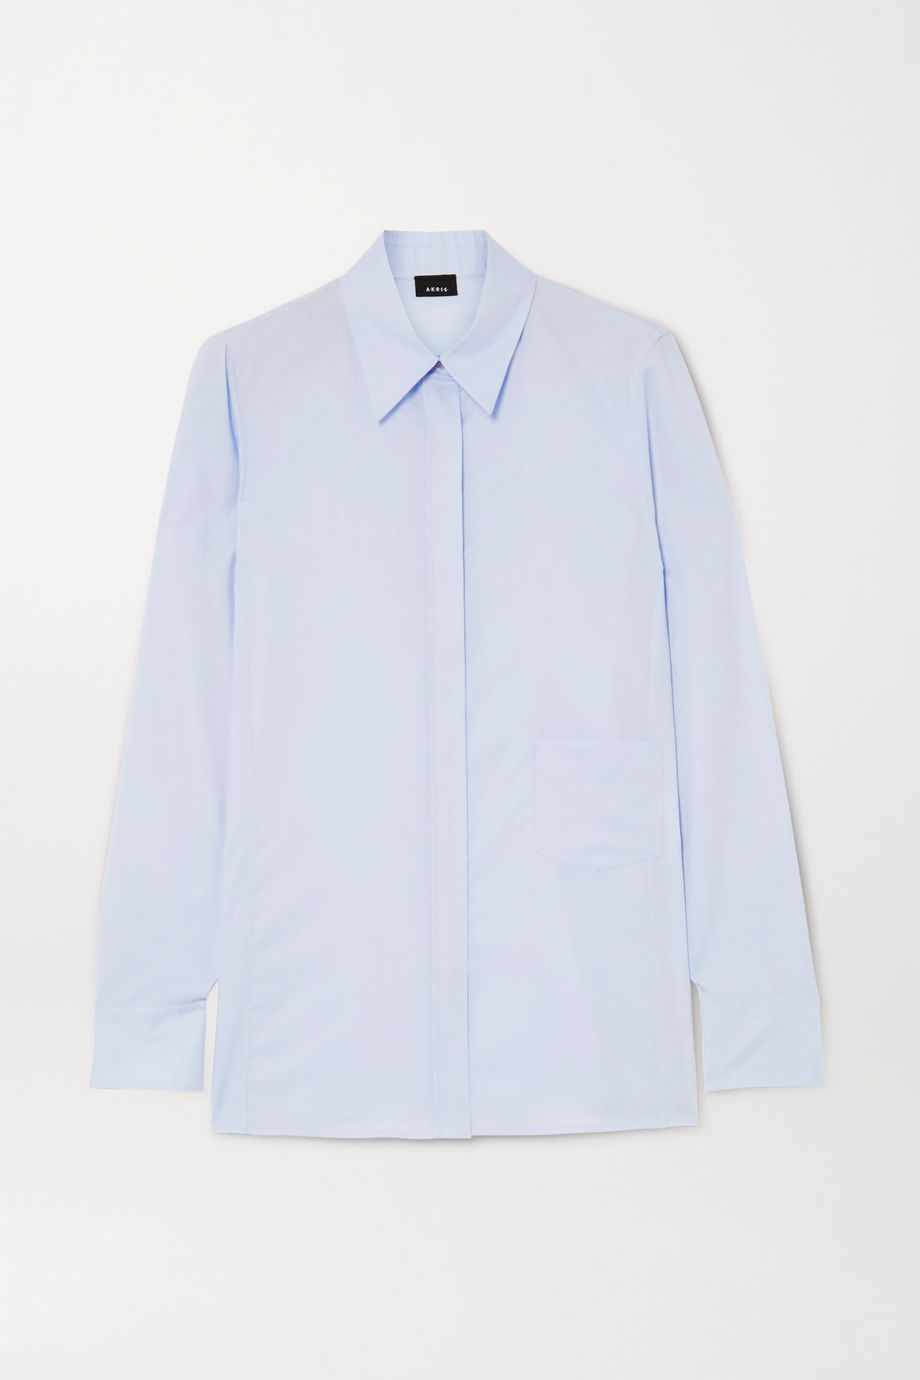 Akris Cotton-poplin shirt